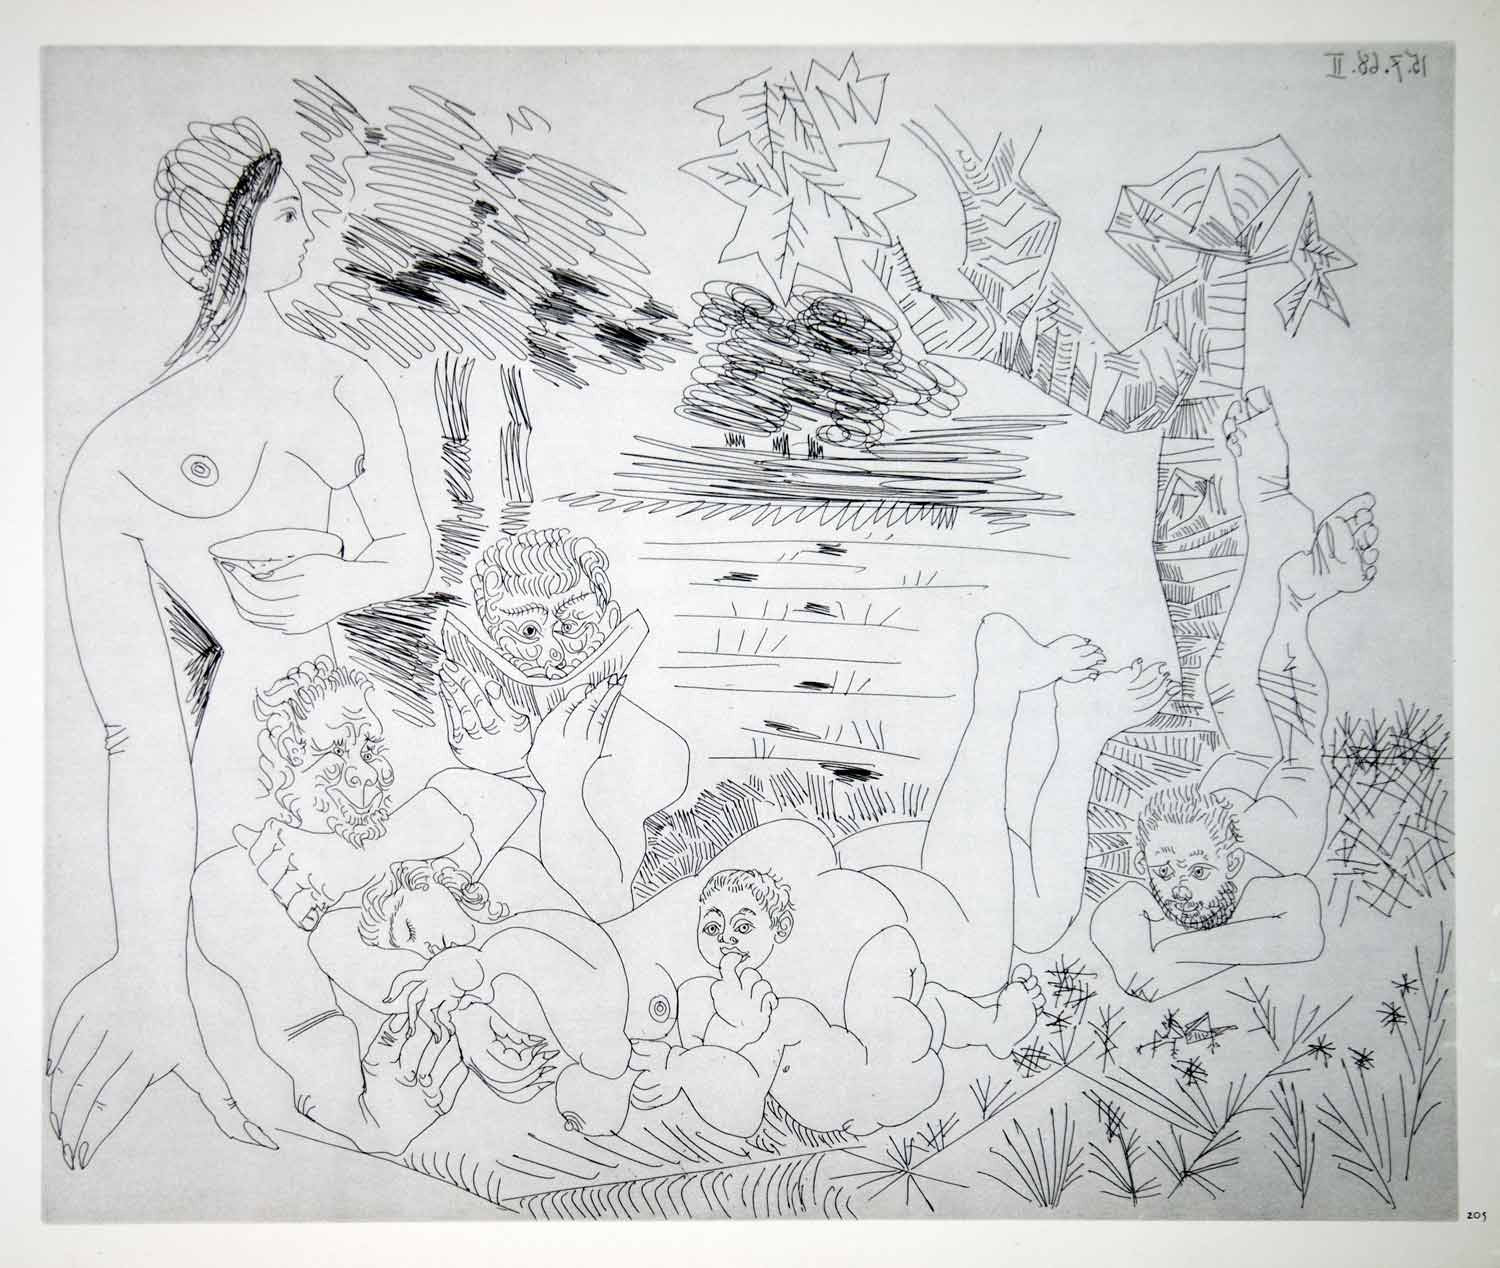 1970 Heliogravure Pablo Picasso Nude Figures Male Female Abstract Art P347B